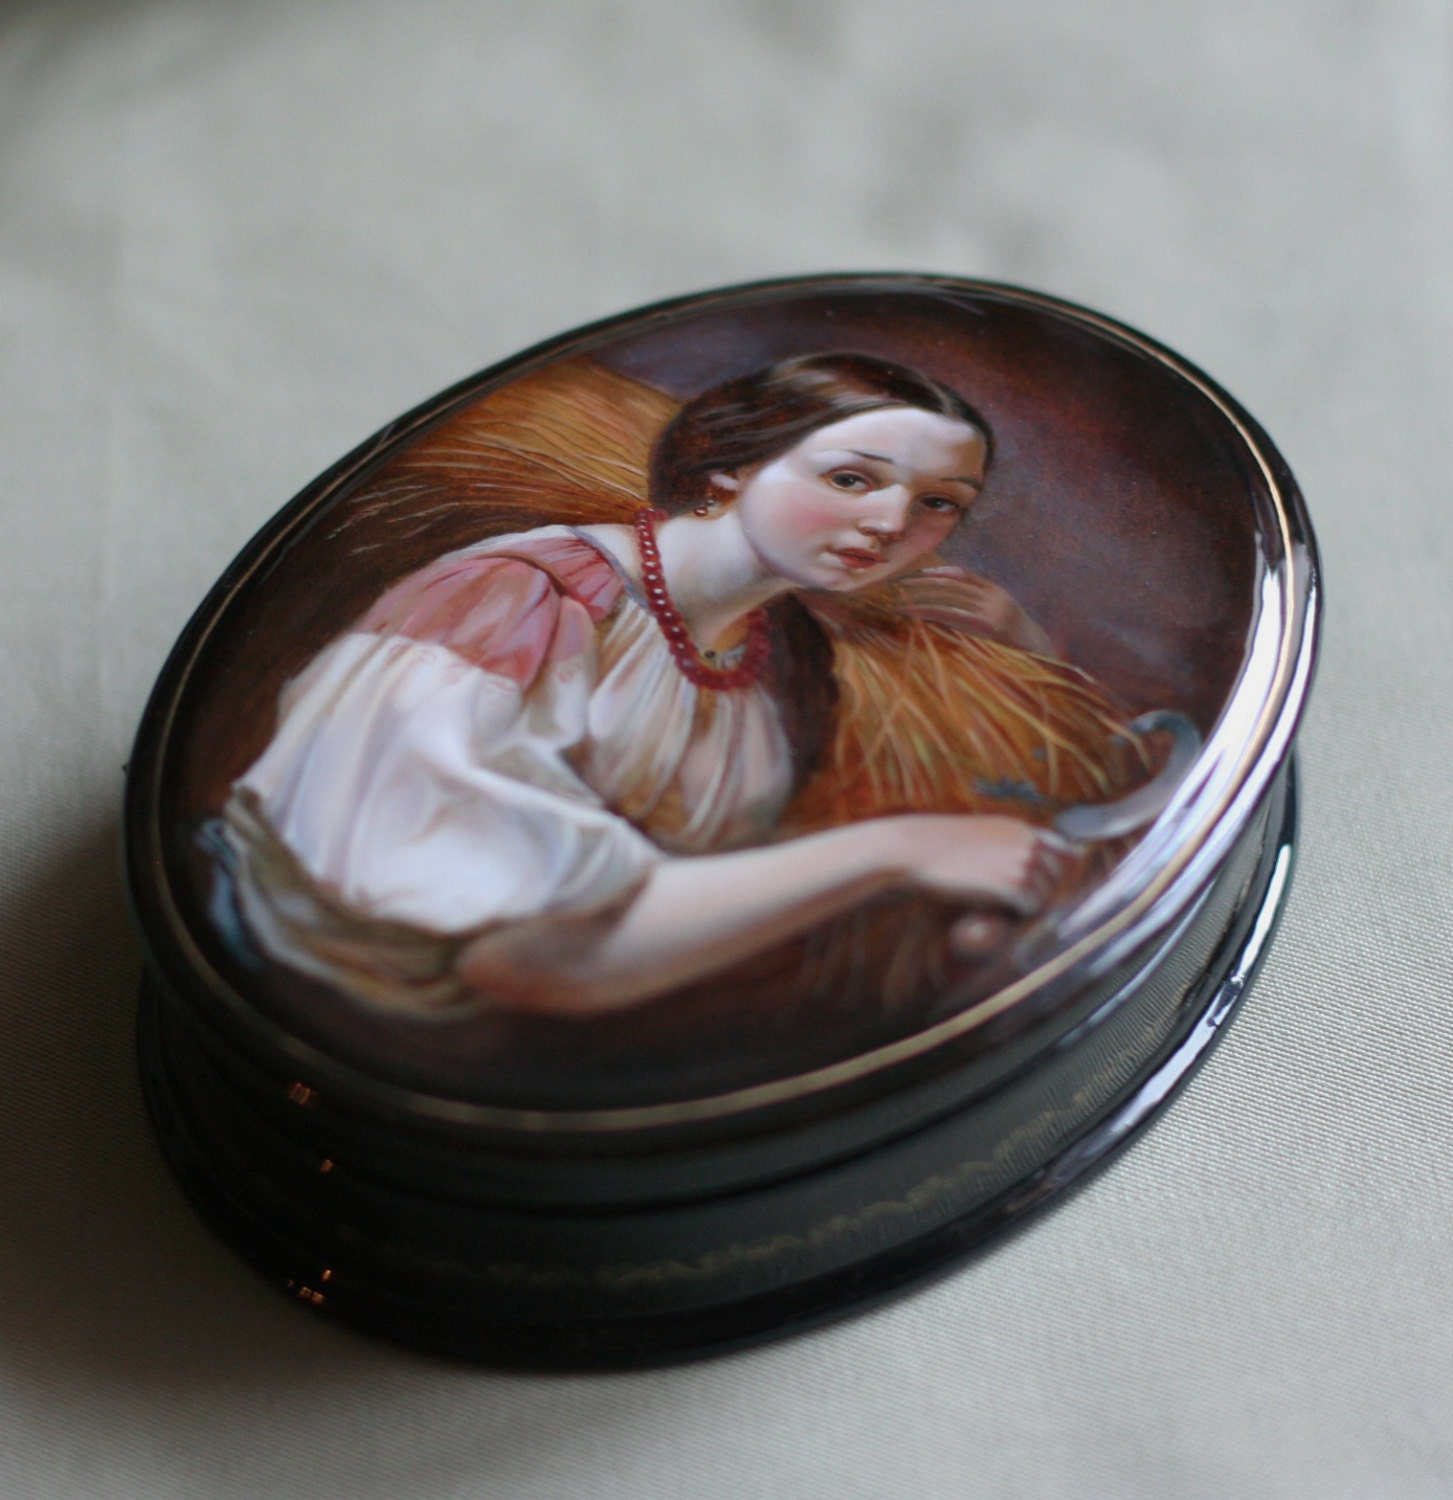 From List Of Names In Colo A Mini Portrait Of Lives: Russian Lacquer Box Antique Collectible Box Russian Art